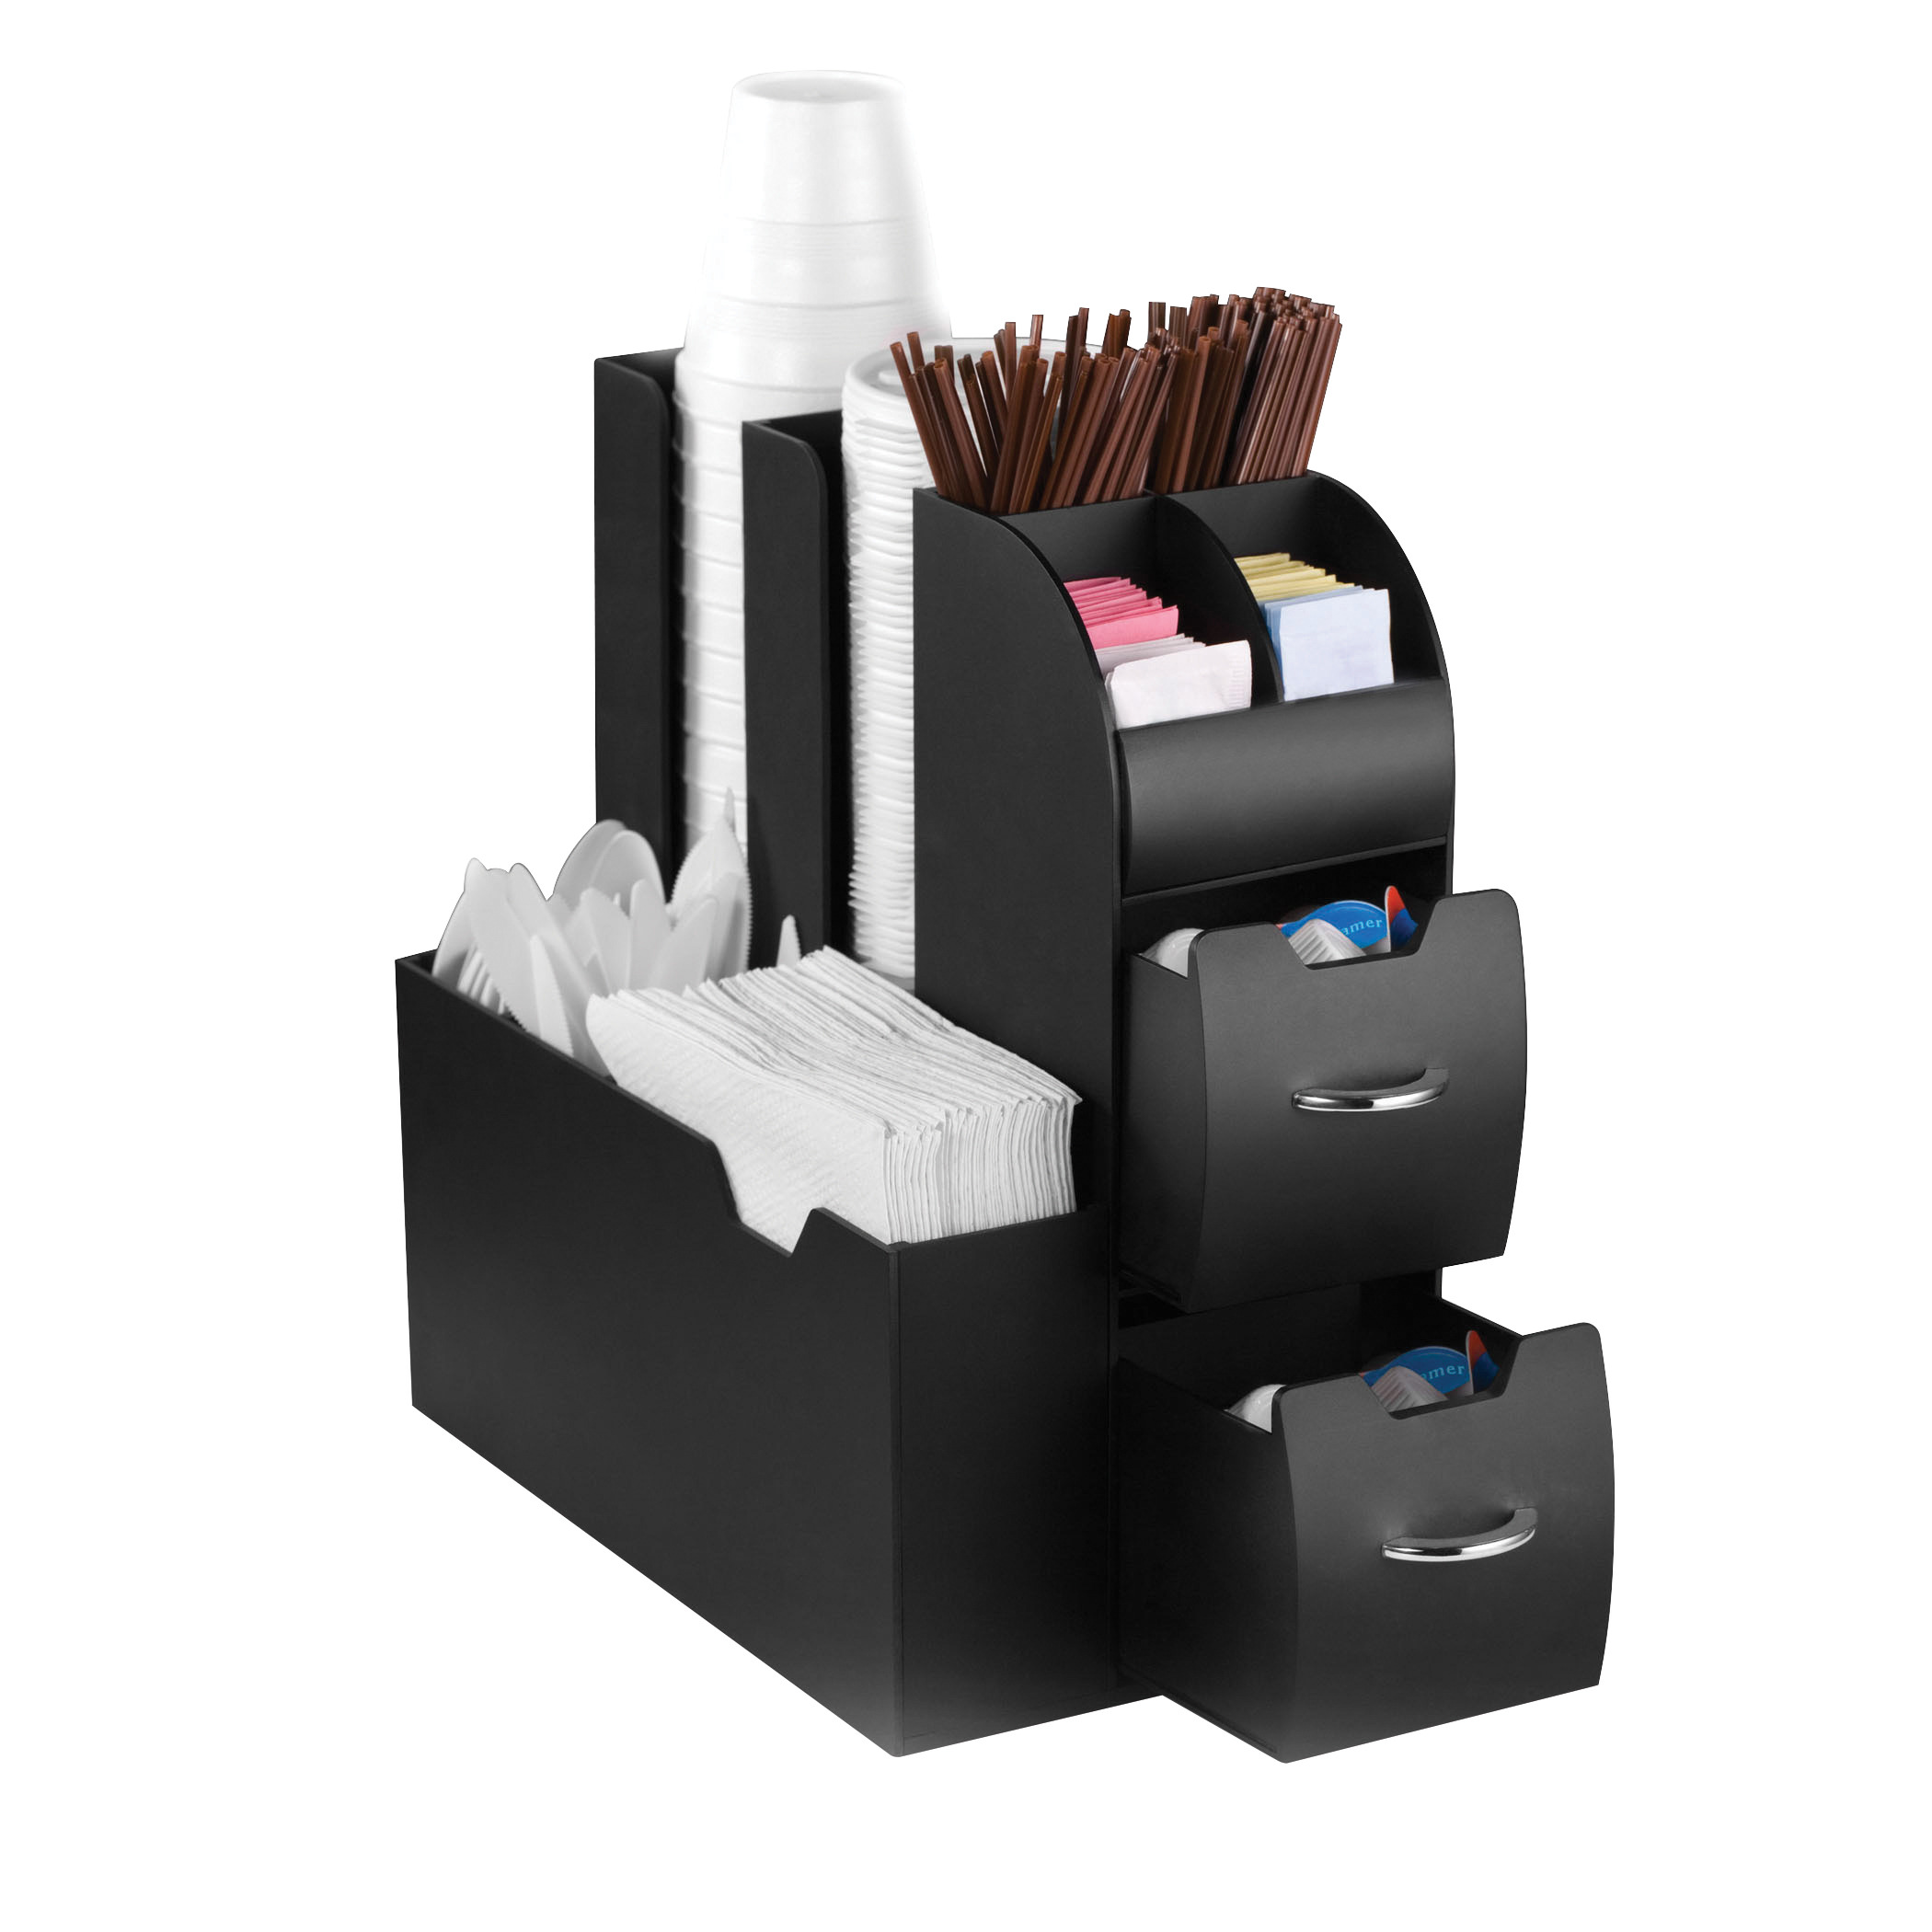 Coffee Condiments and Accessory Caddy